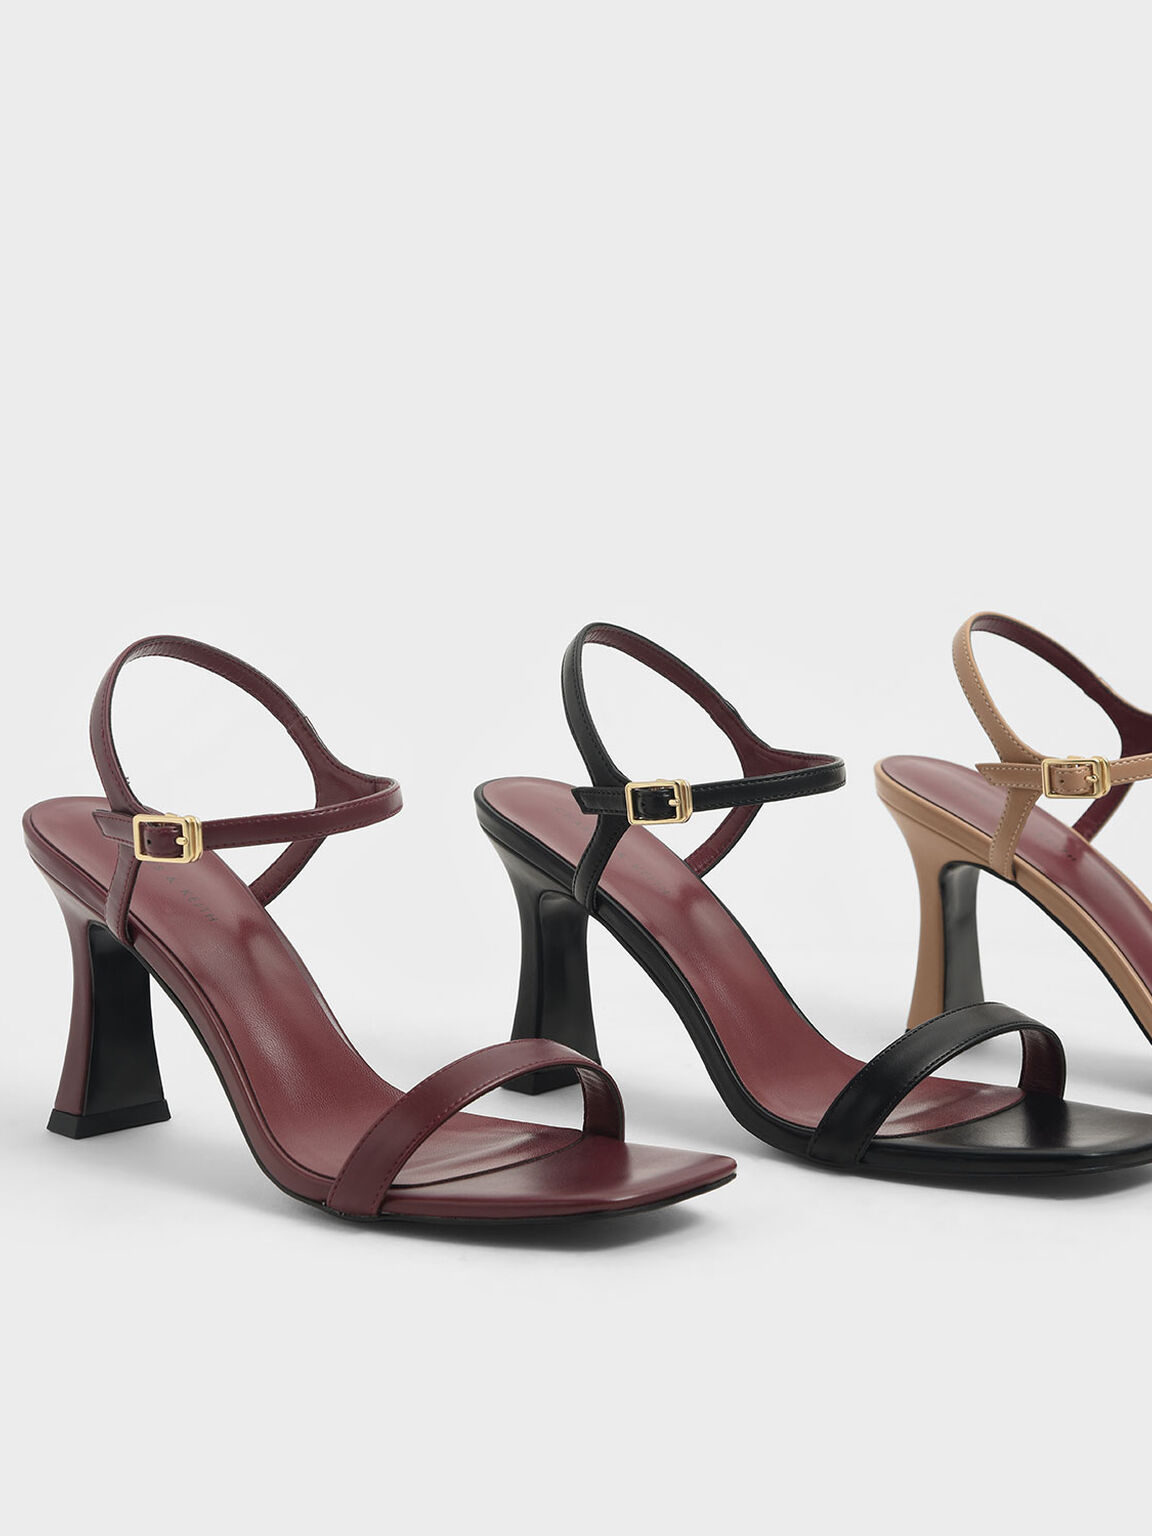 Sculptural Heel Sandals, Burgundy, hi-res